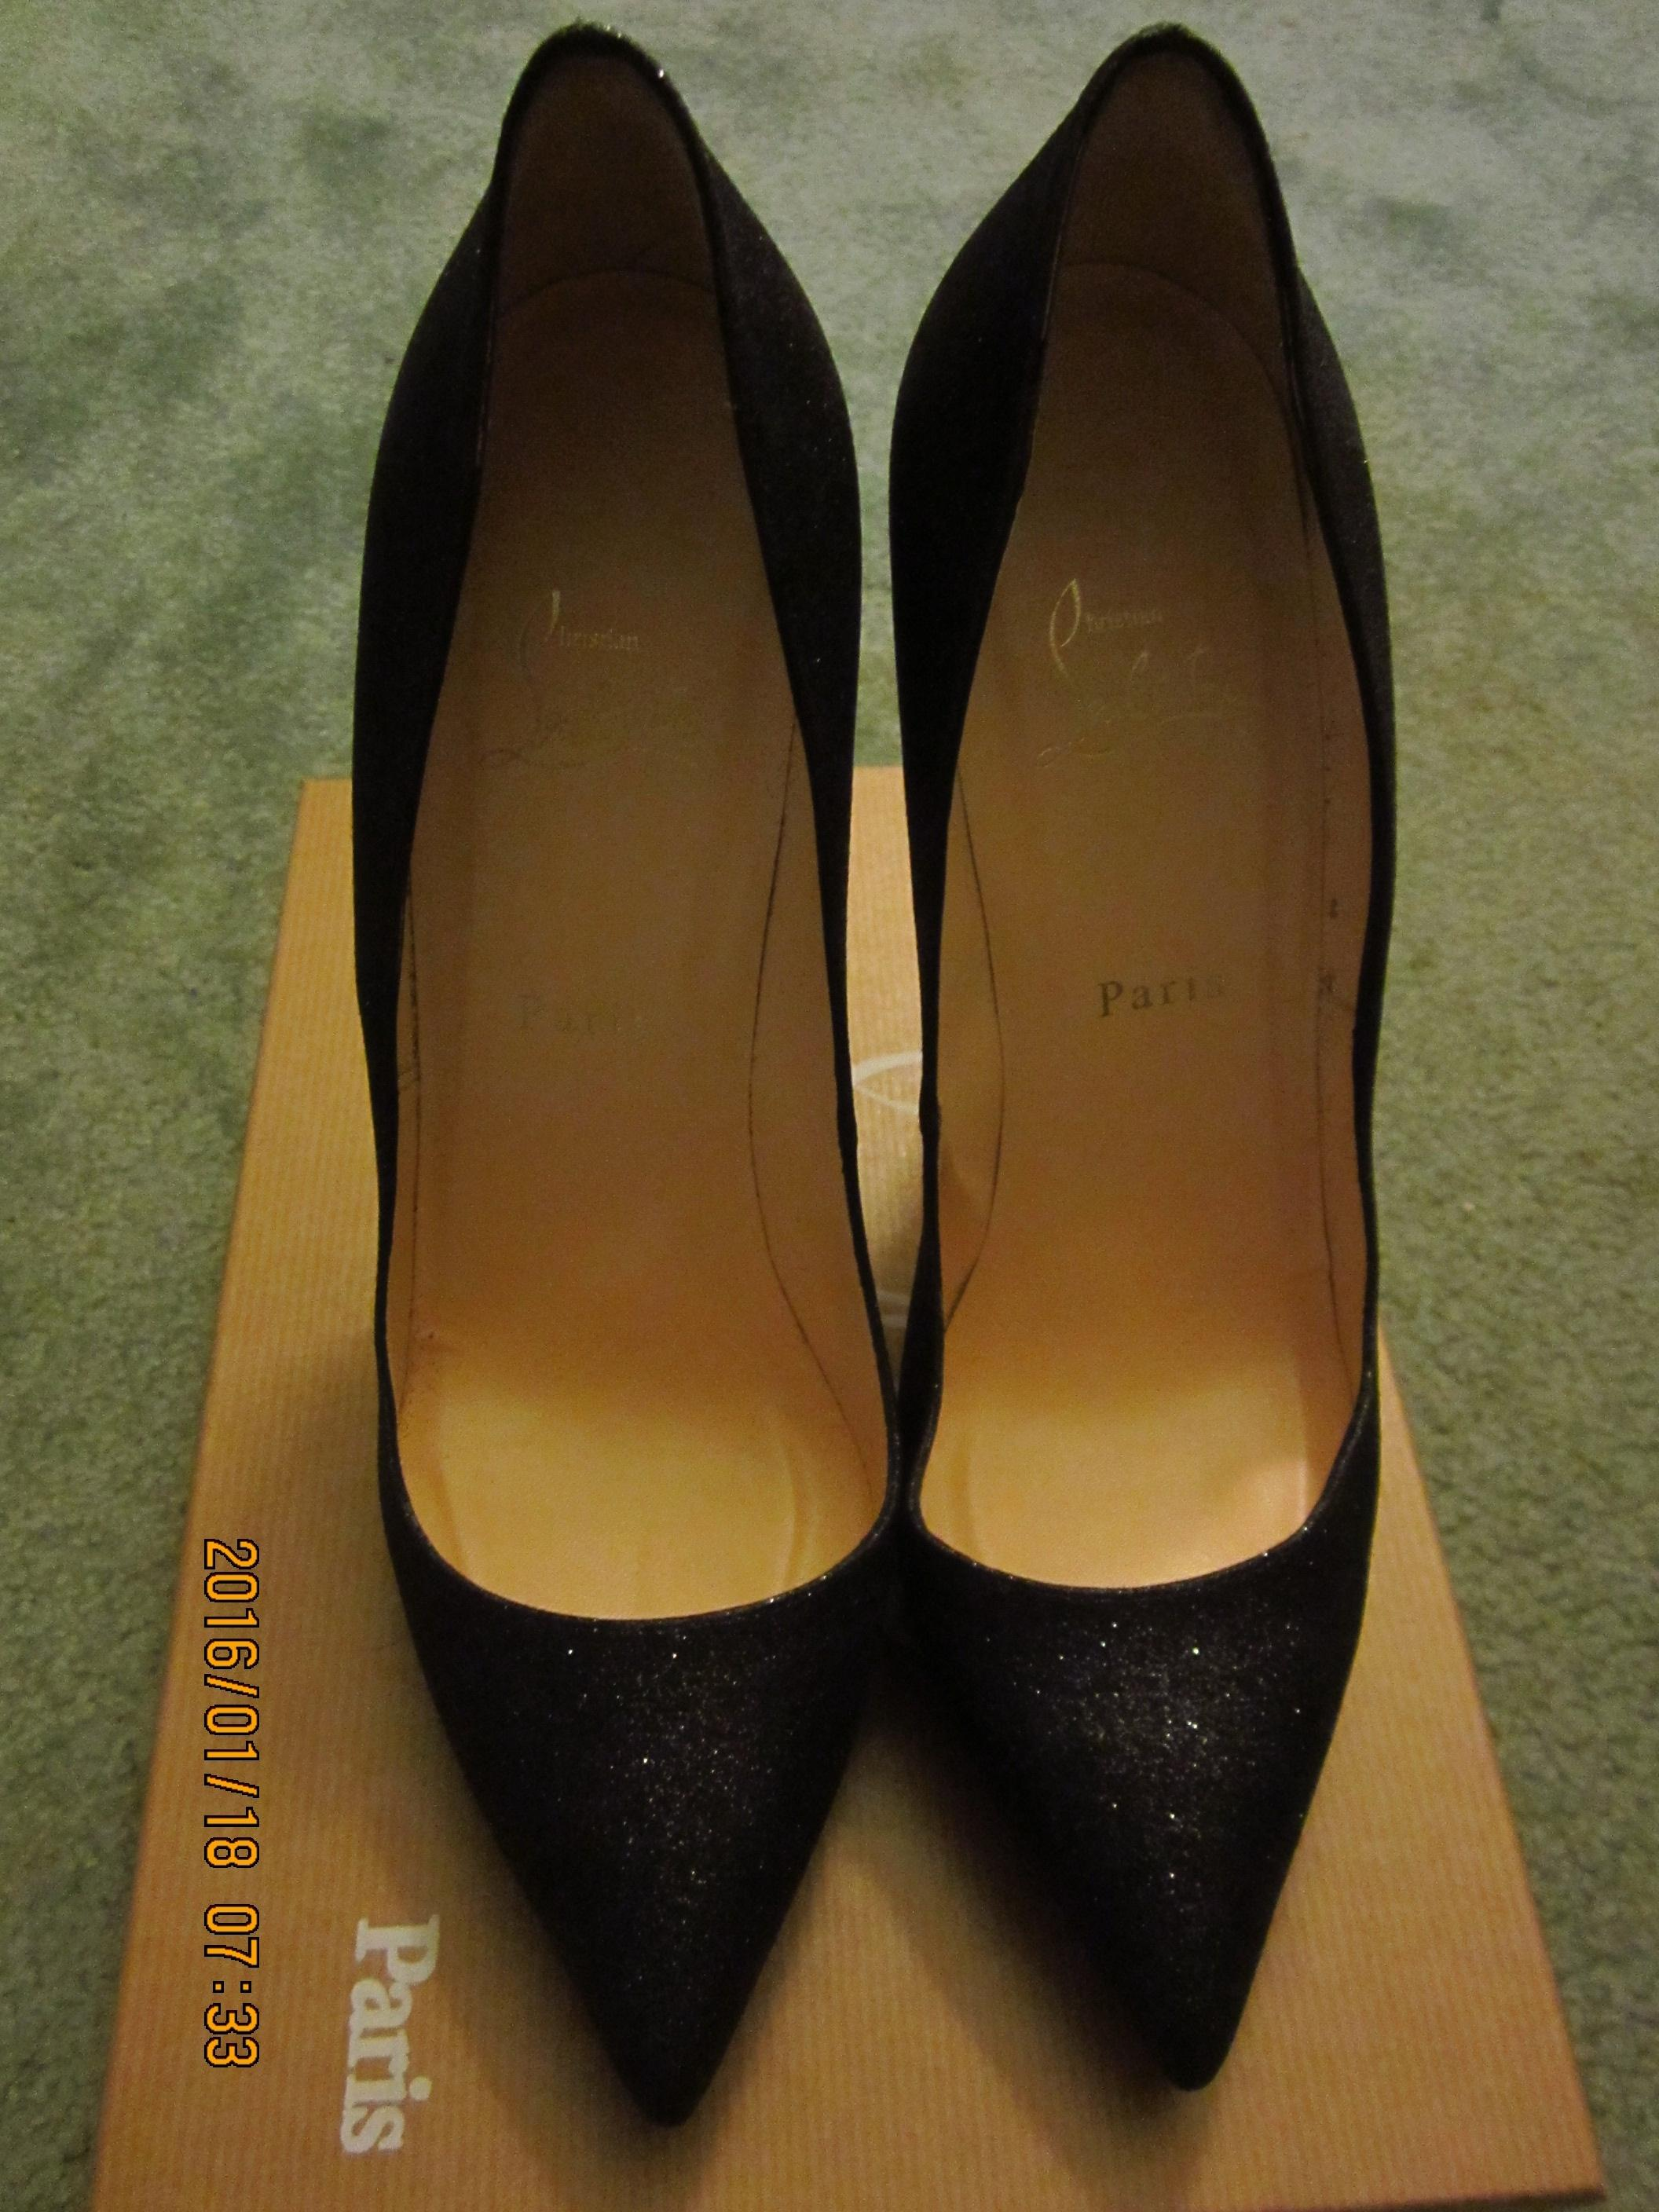 Christian Louboutin Paris Heels Rare Black Pumps